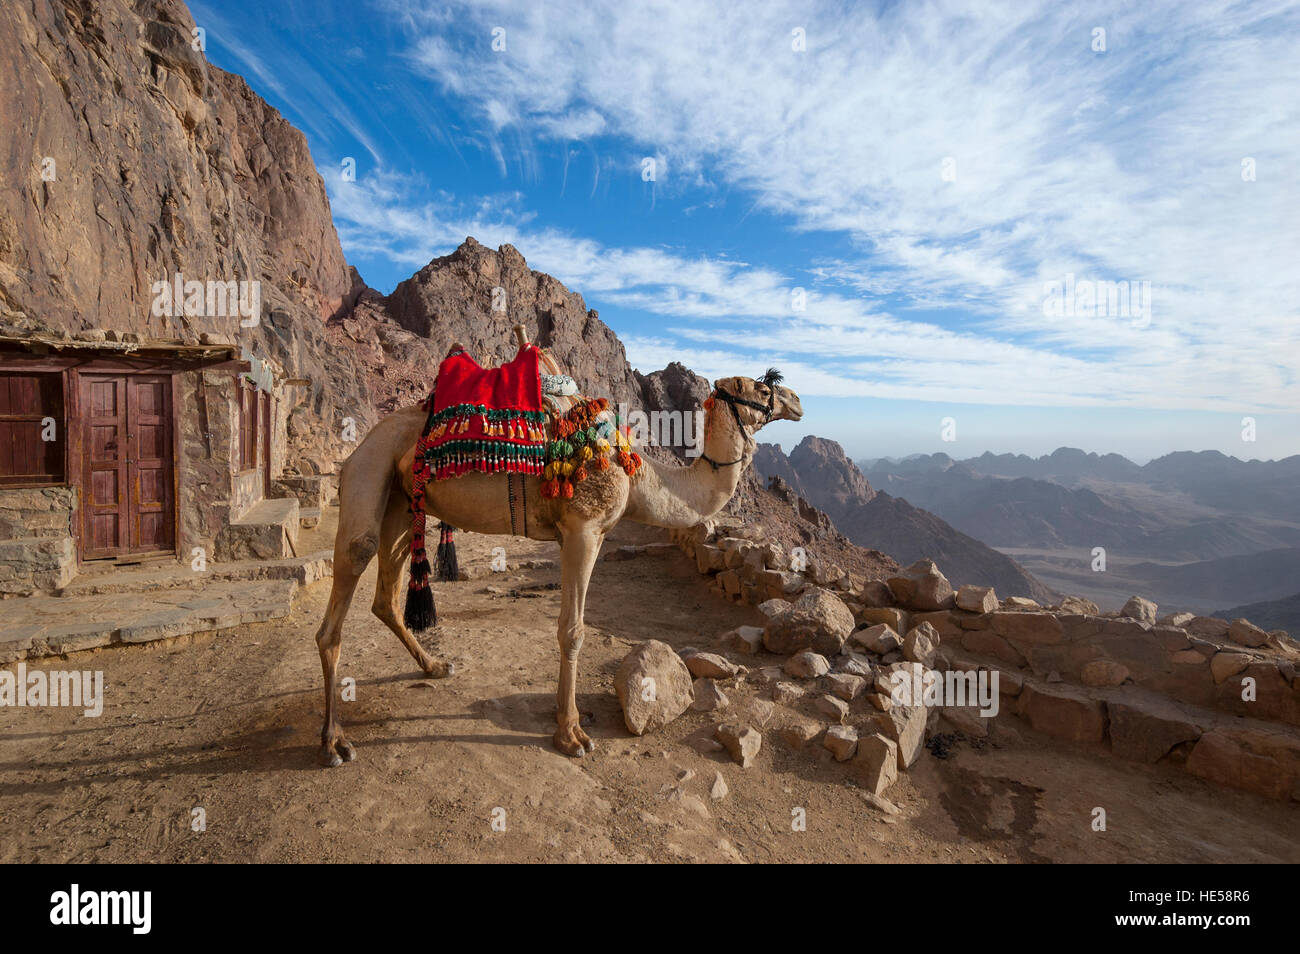 Camel looking out at Mount Sinai in Egypt - Stock Image